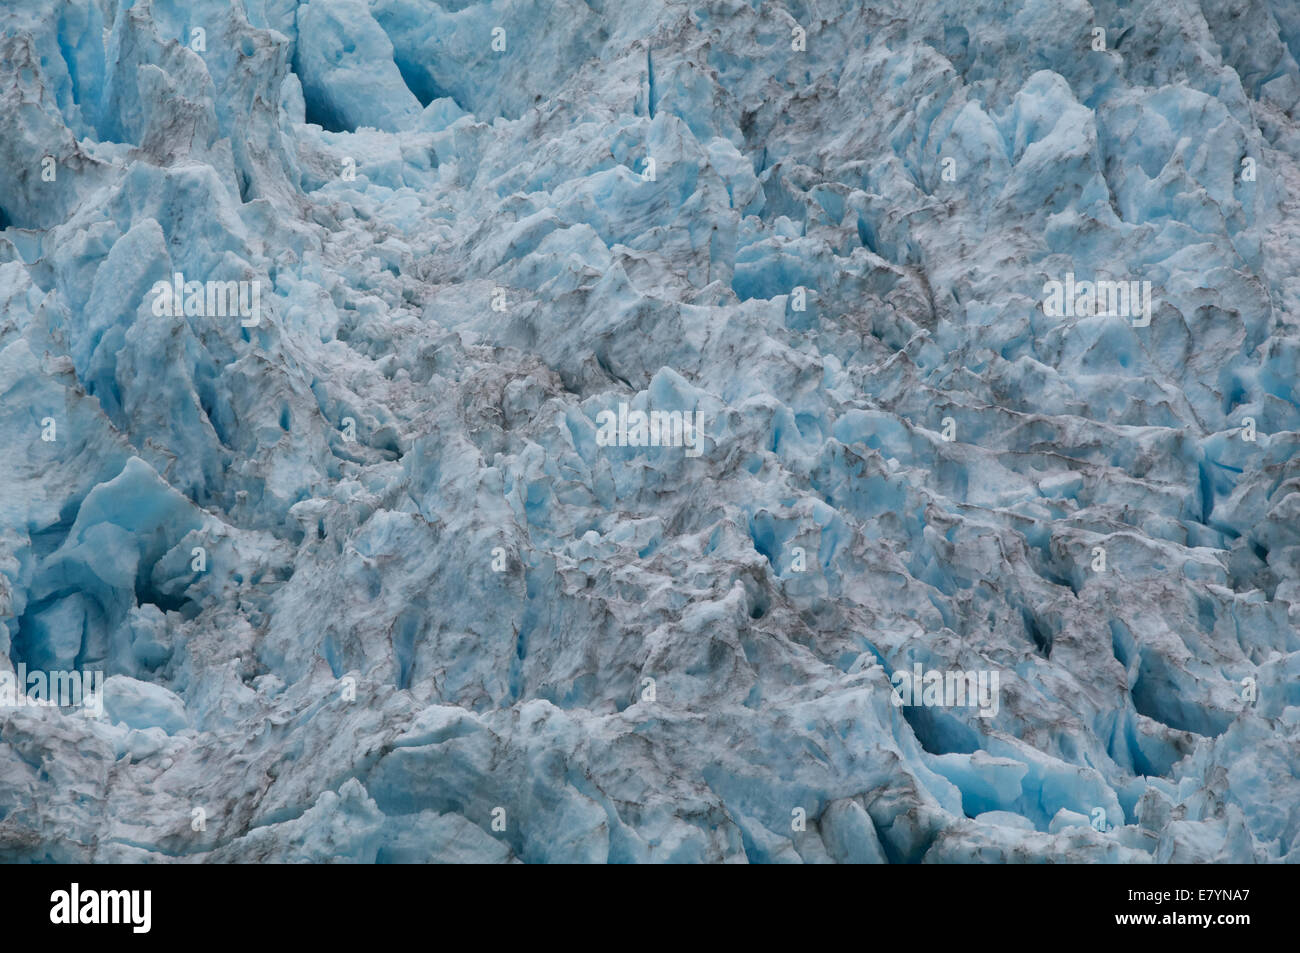 A close-up of the rough pattern of ice on Northwestern Glacier in Kenai Fjords National Park, Alaska. - Stock Image